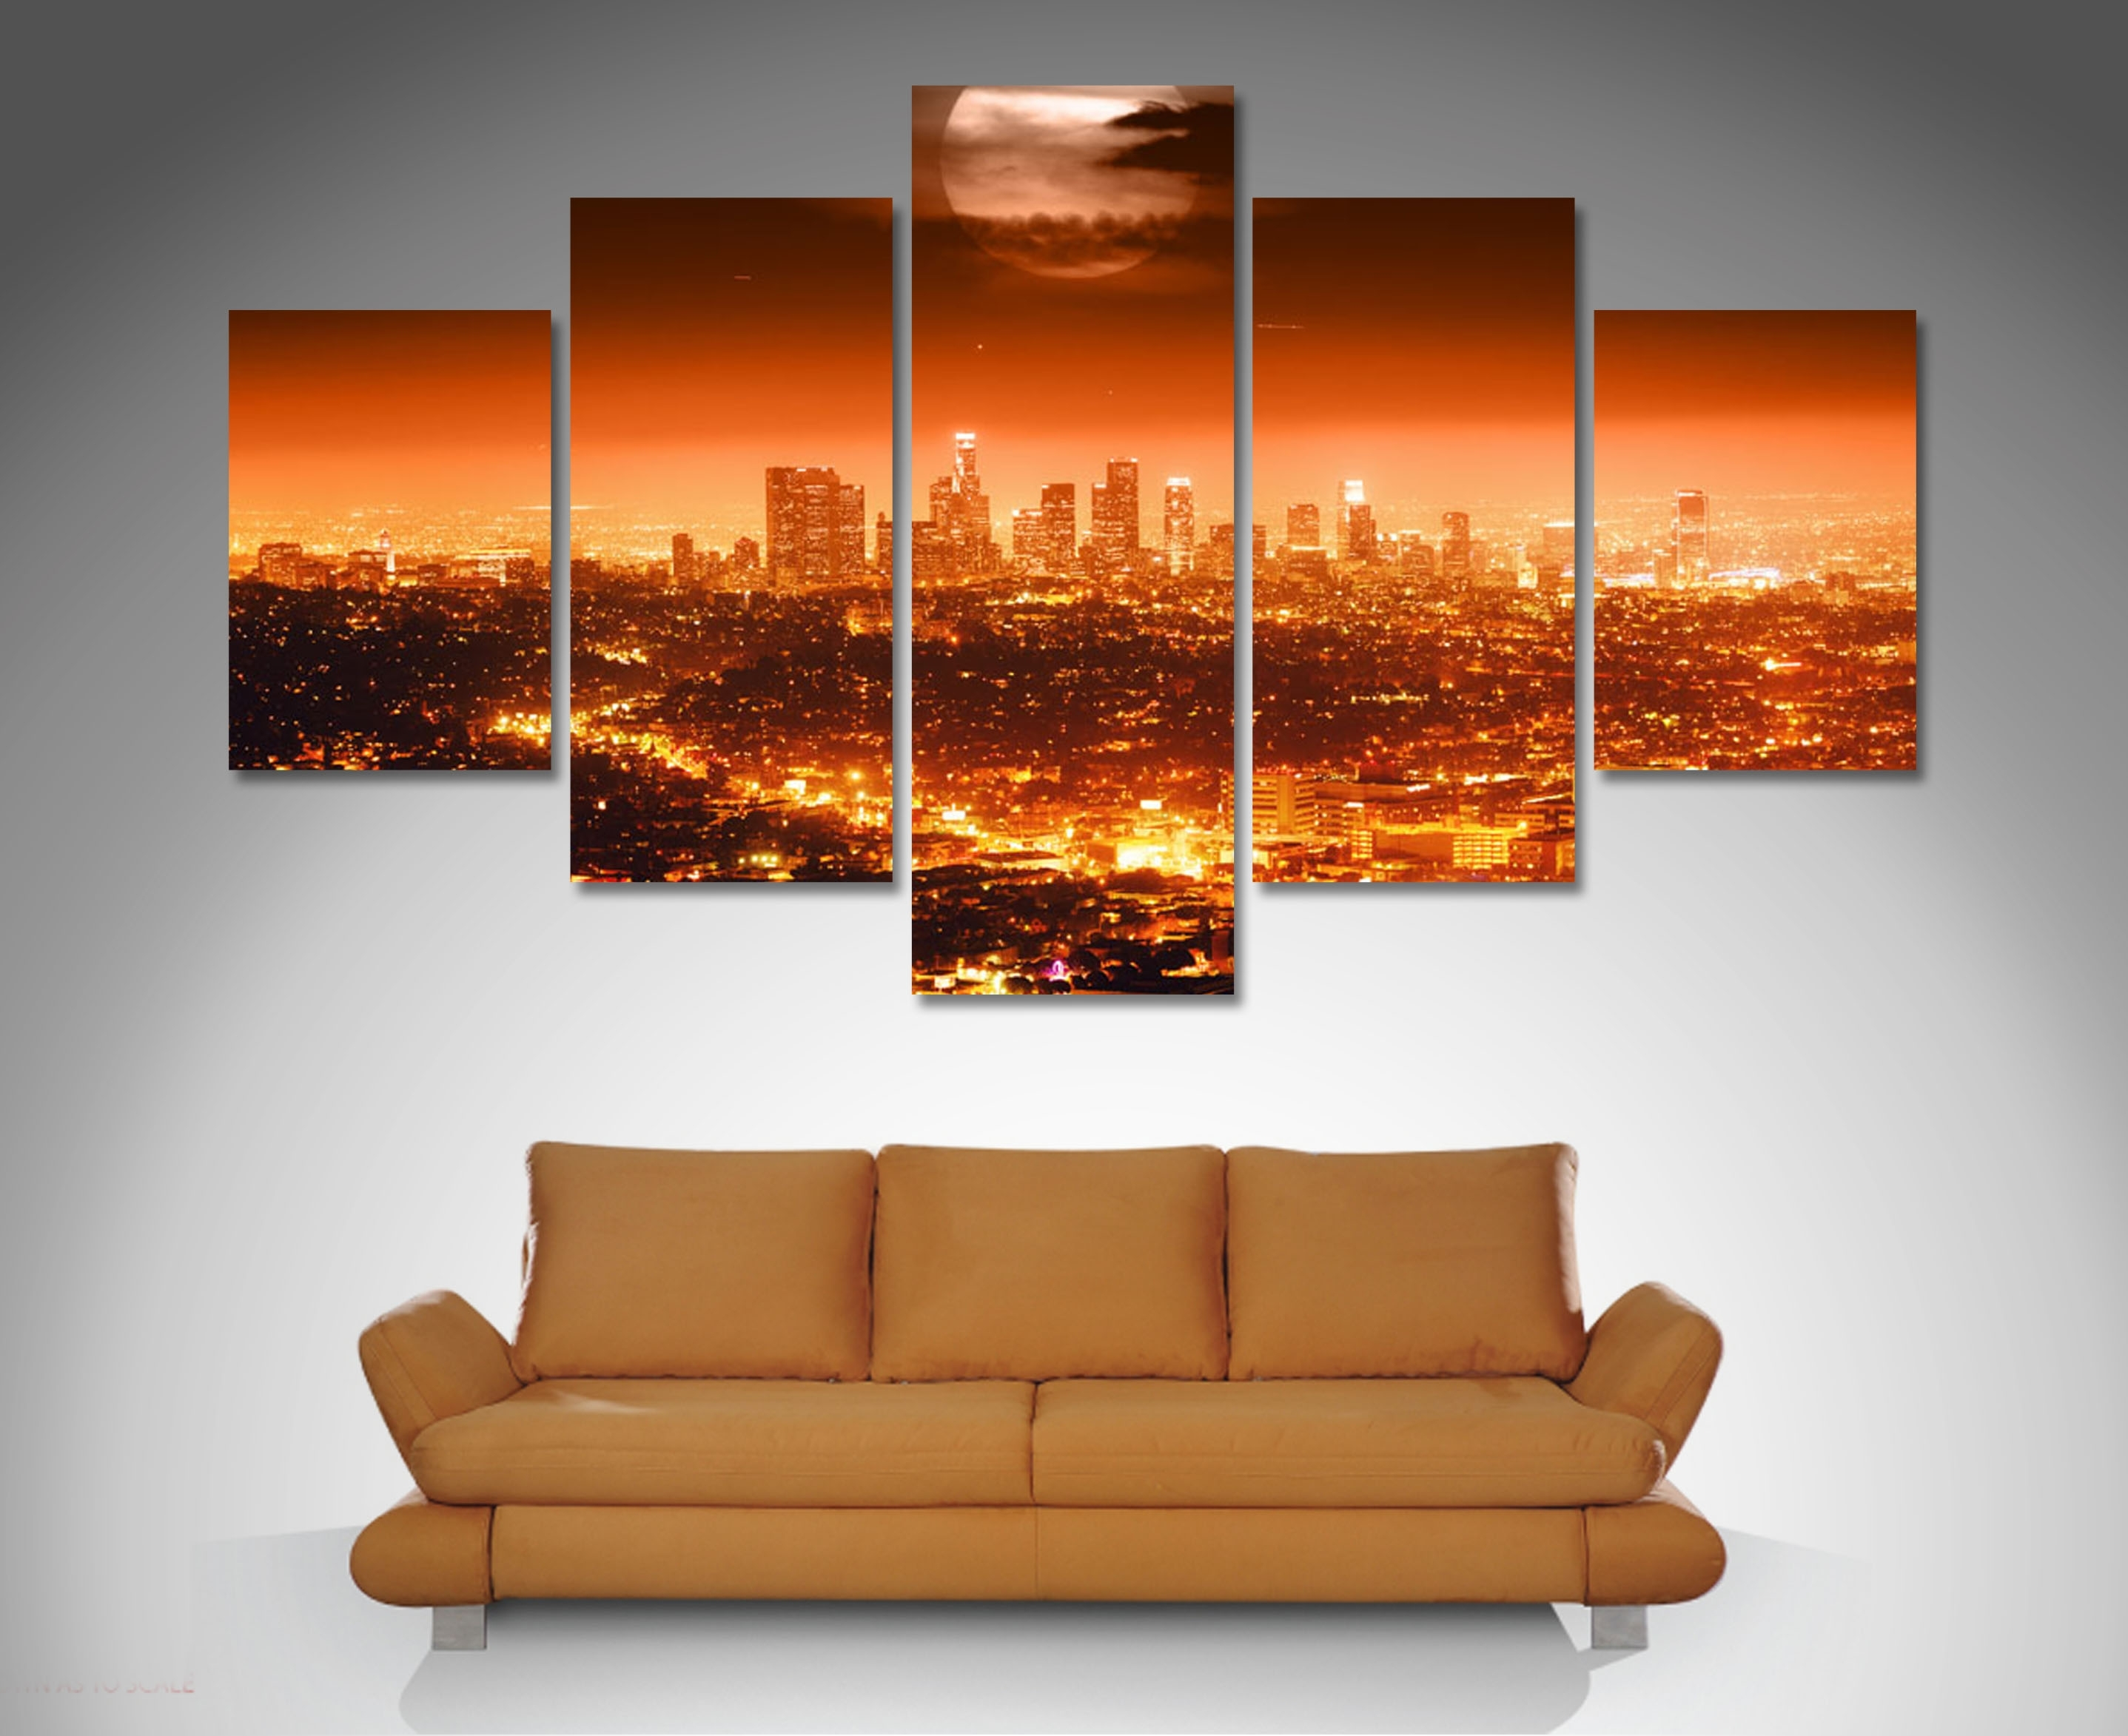 Los Angeles 5 Panel Wall Art Canvas Print Intended For Los Angeles Wall Art (View 8 of 20)